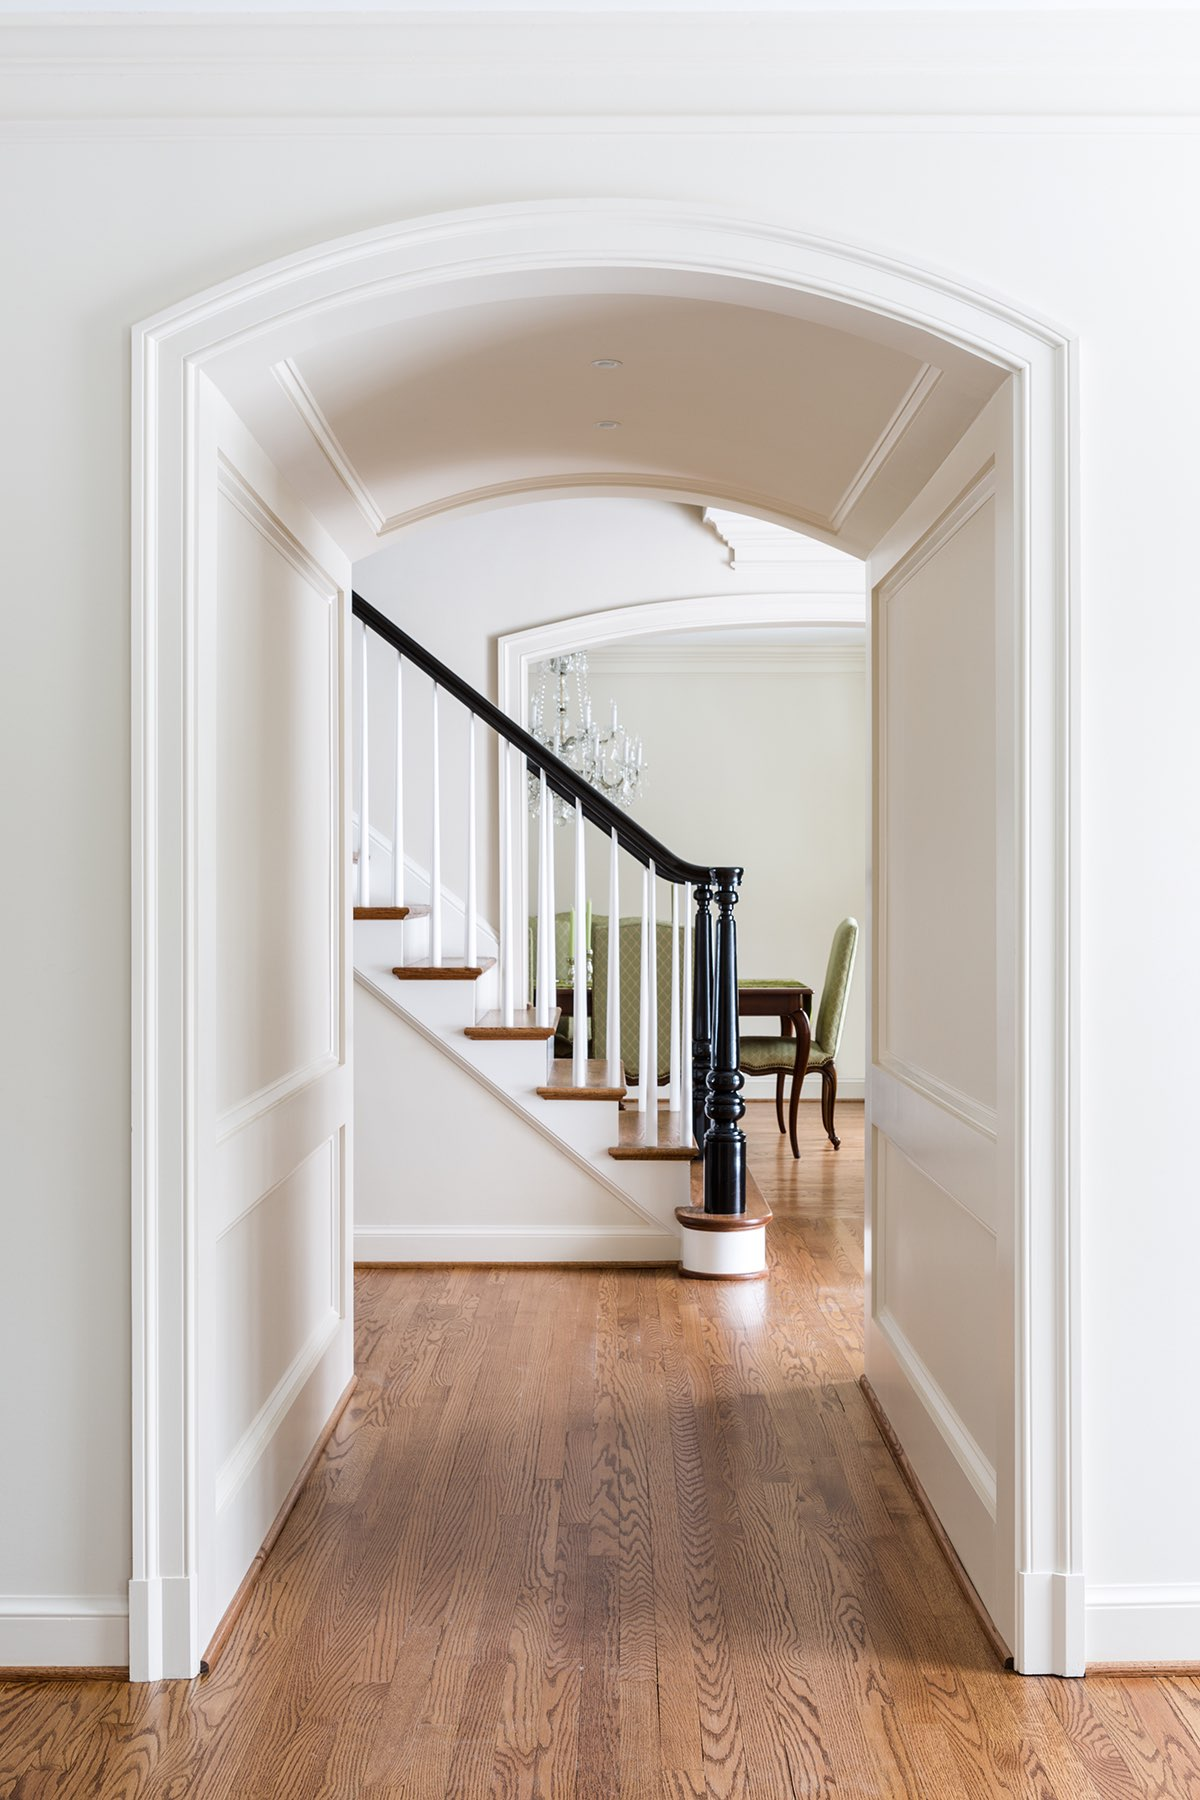 Custom hall archway and artisanal black paint finish on stairs